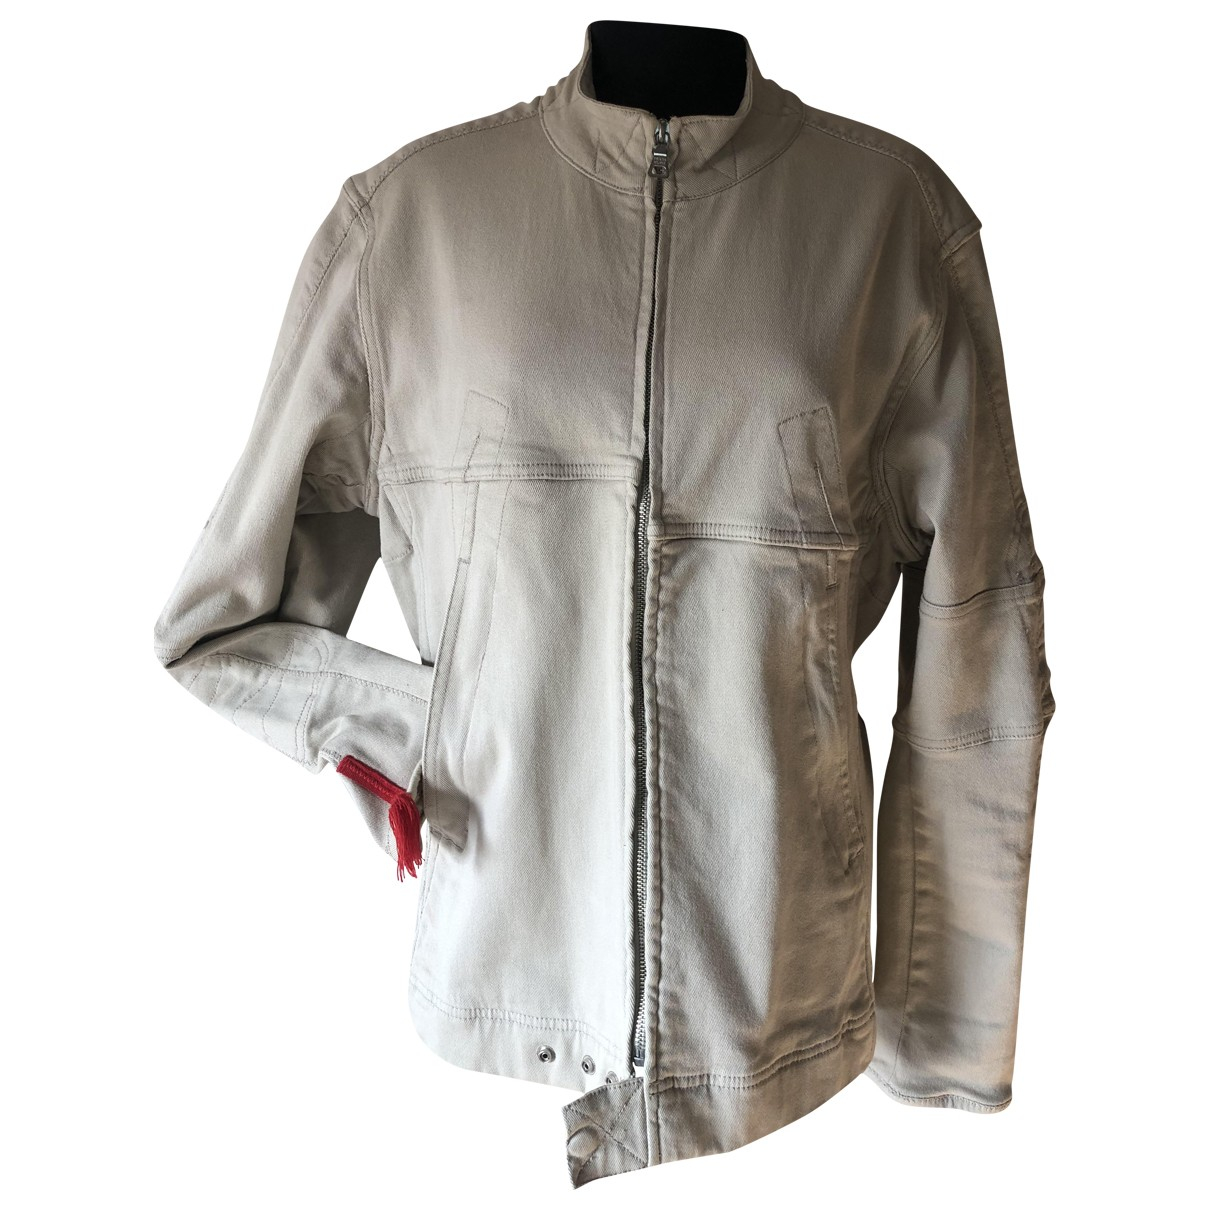 Prada \N Ecru Cotton jacket  for Men 48 IT